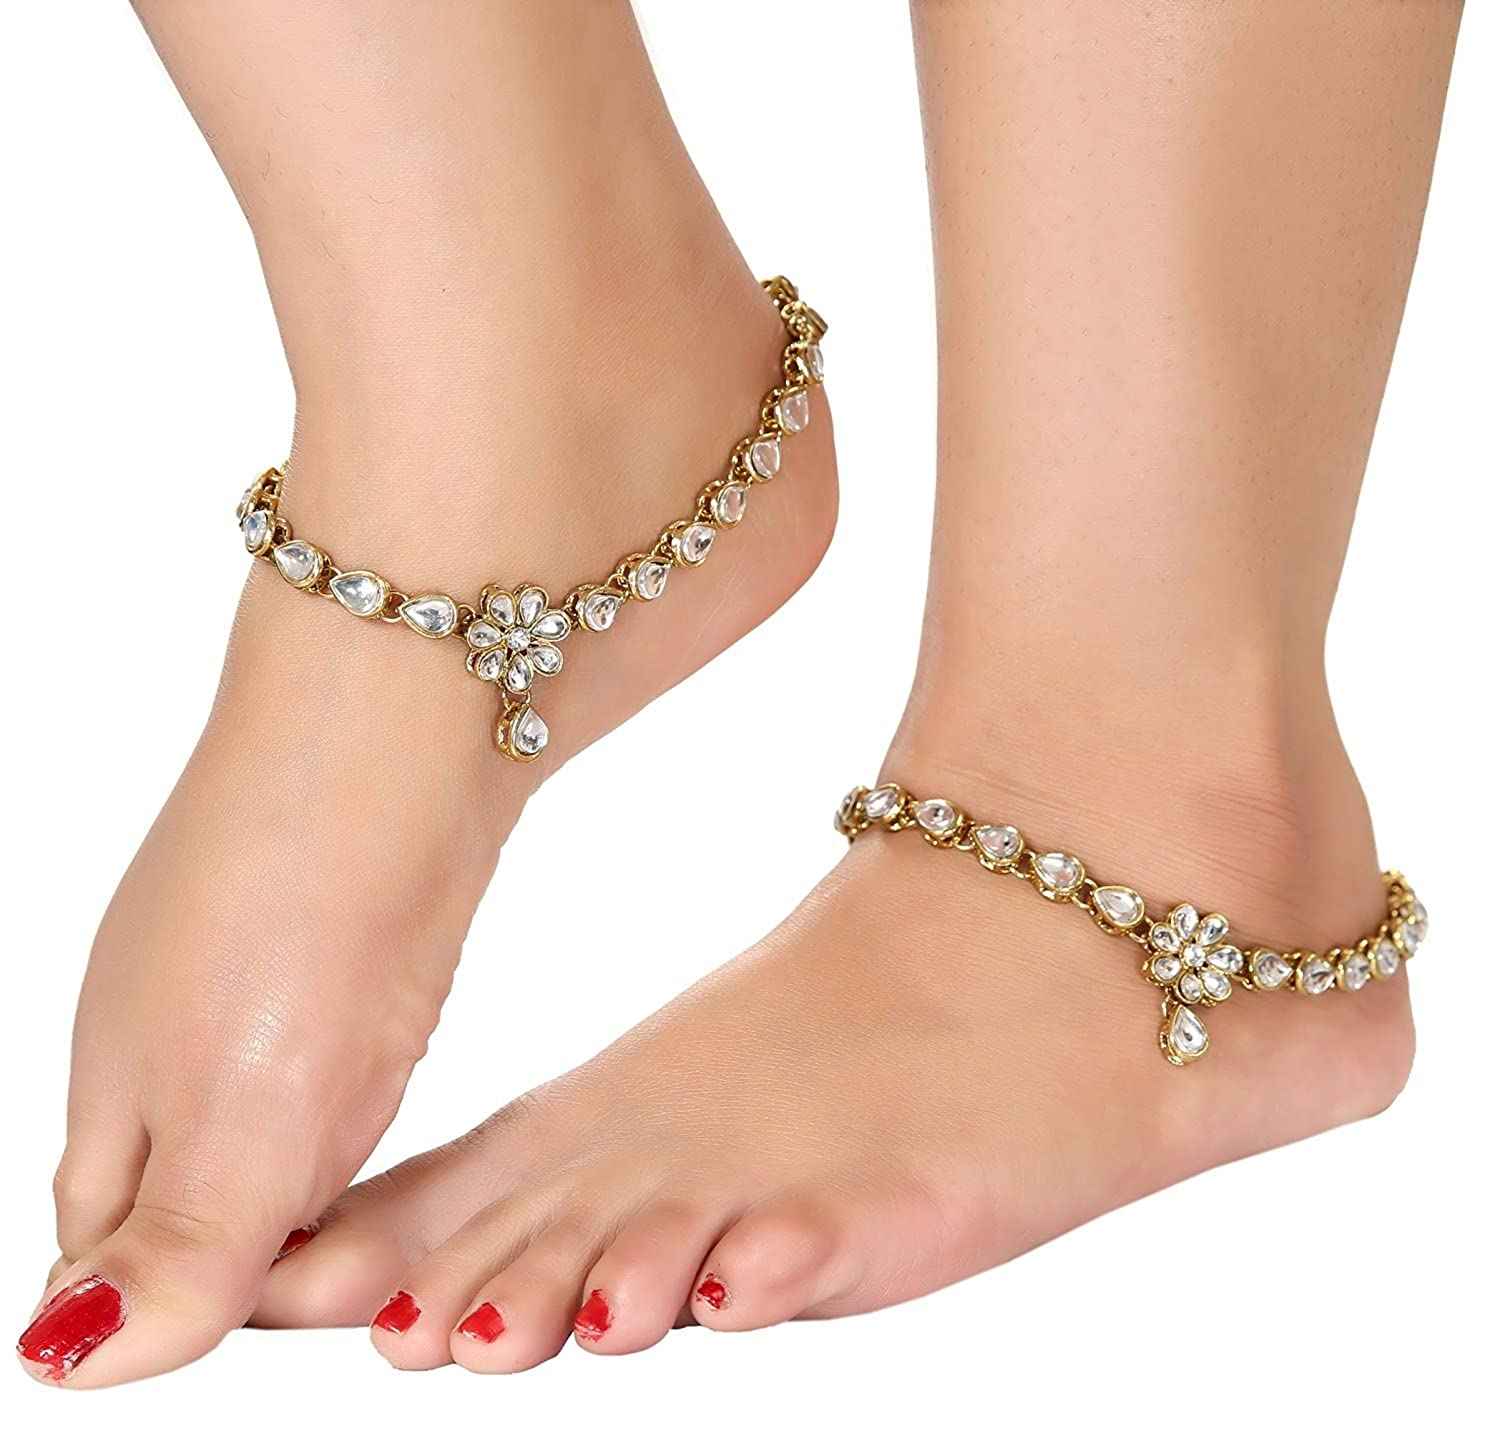 ankle her anklet pin bracelets for jewelry evil green gift foot bracelet eye body shop blue